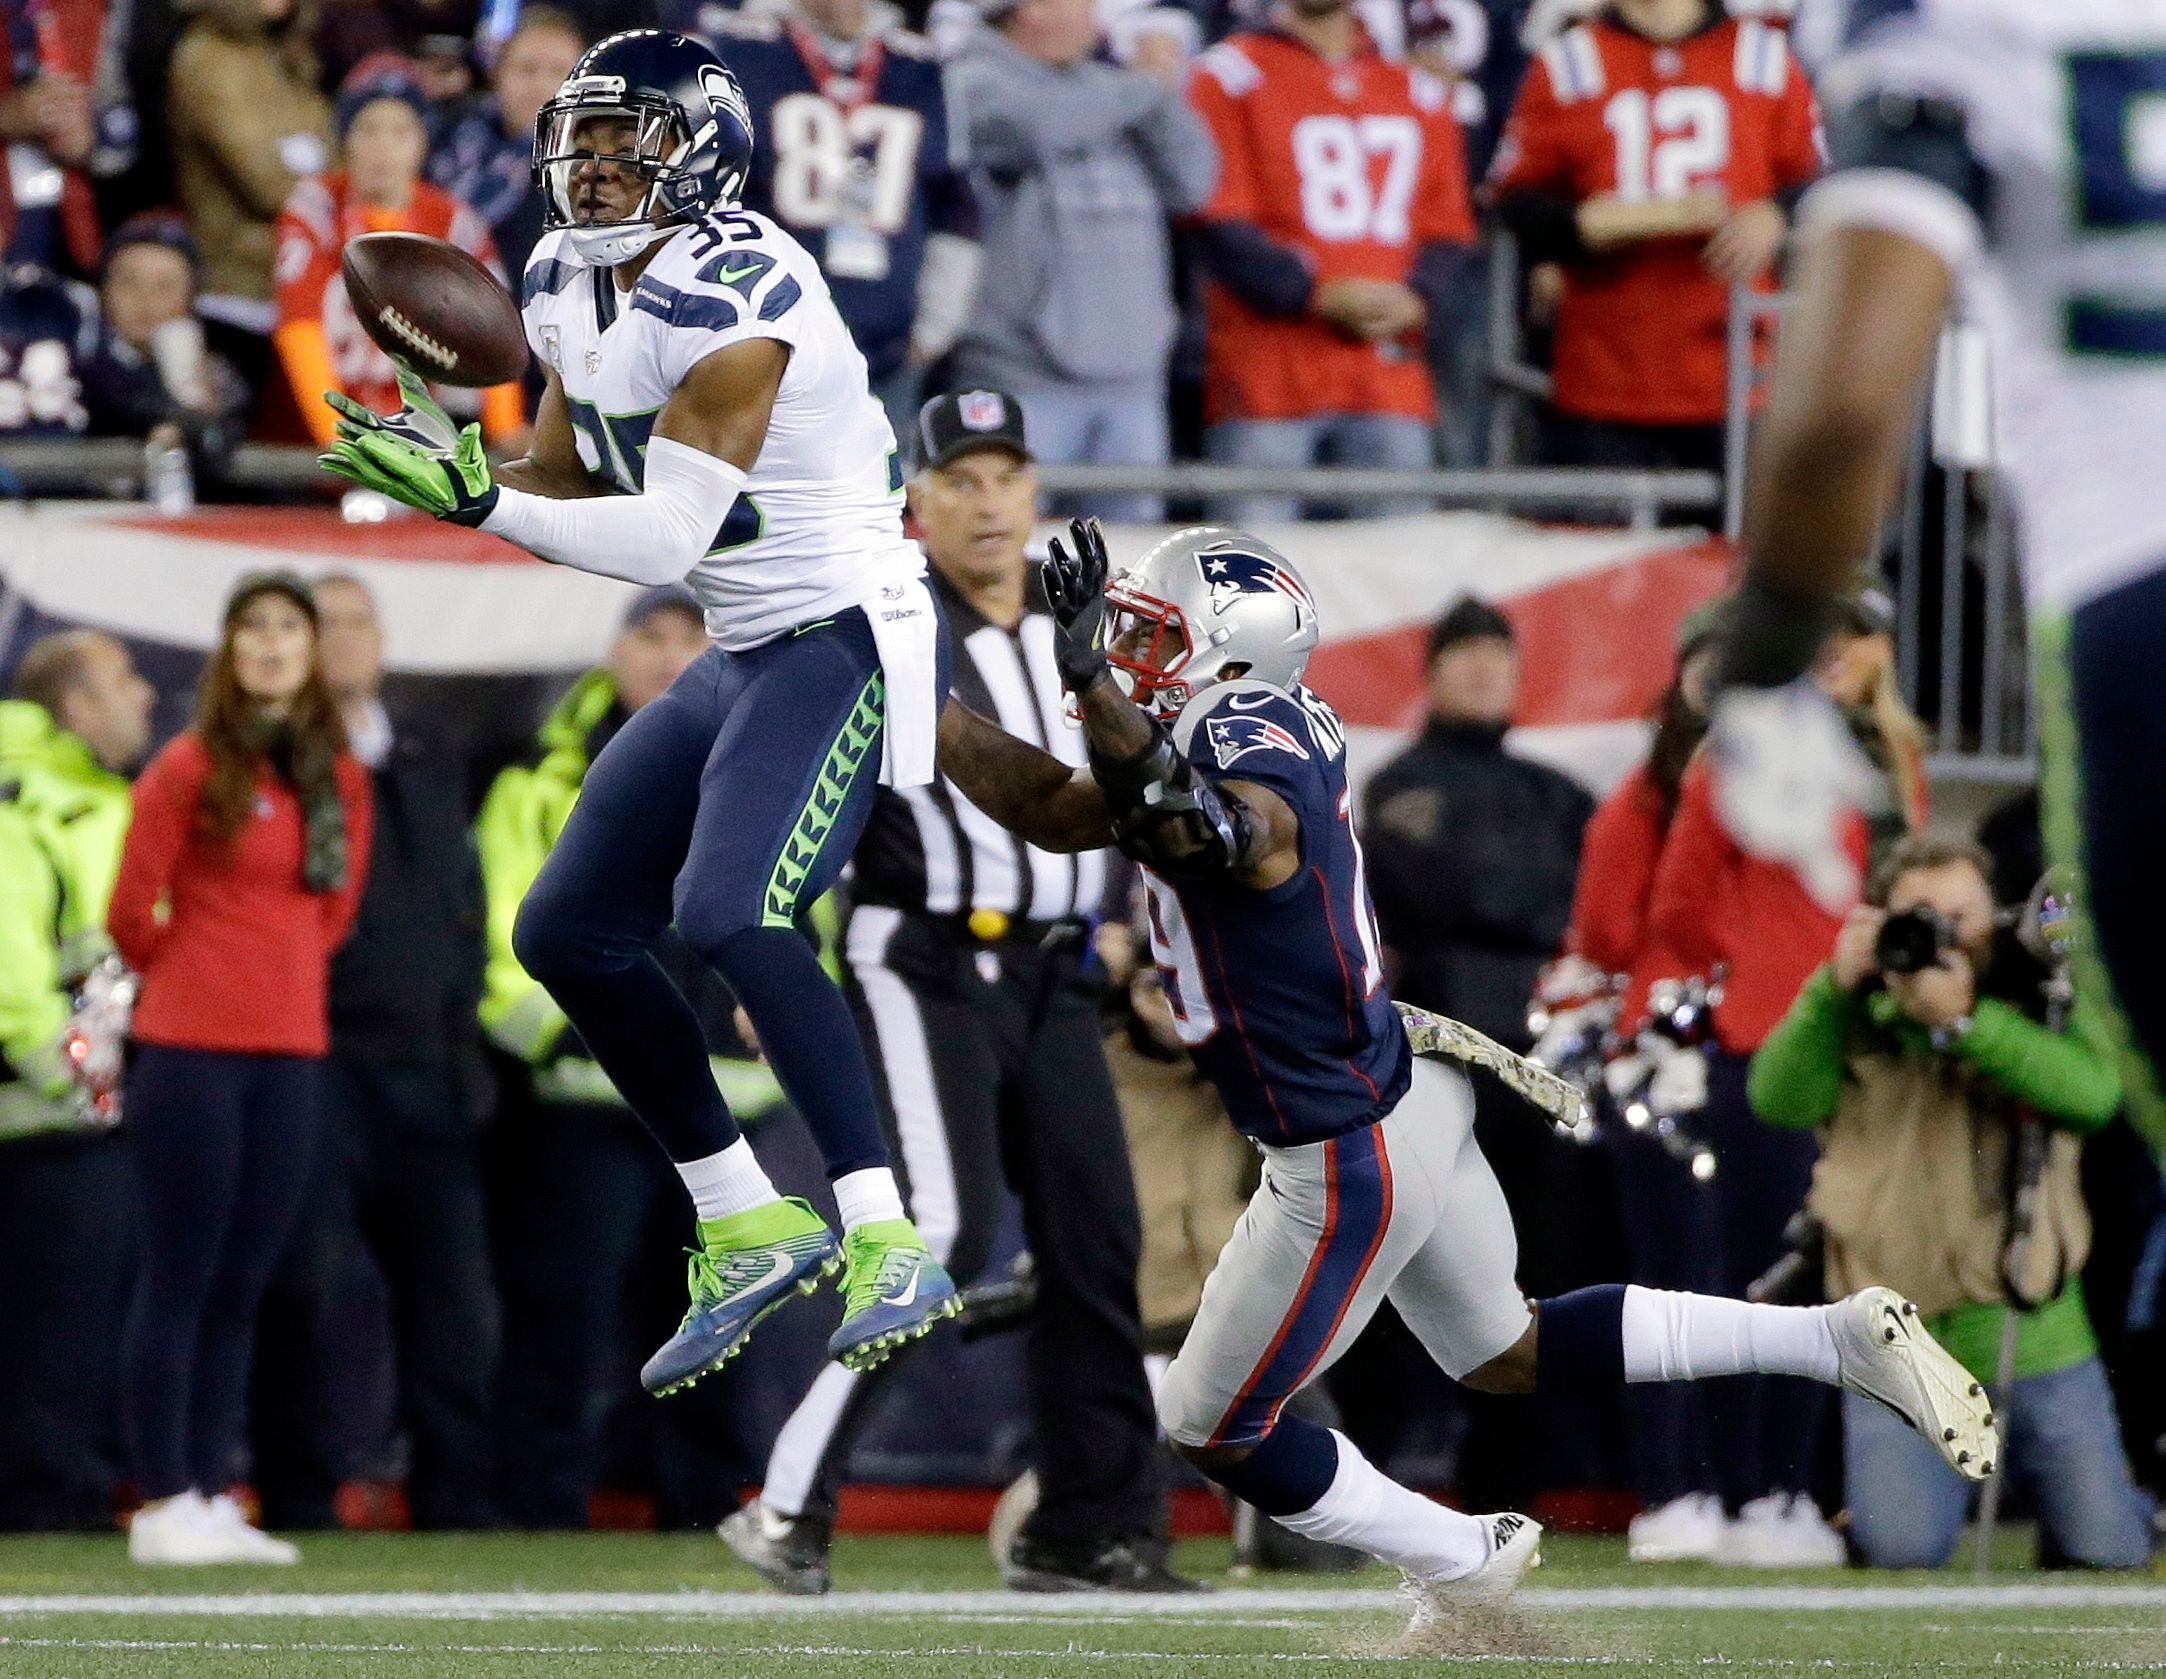 CB DeShawn Shead. Overall: 74. Speed: 86. Agility: 84. Awareness: 68.